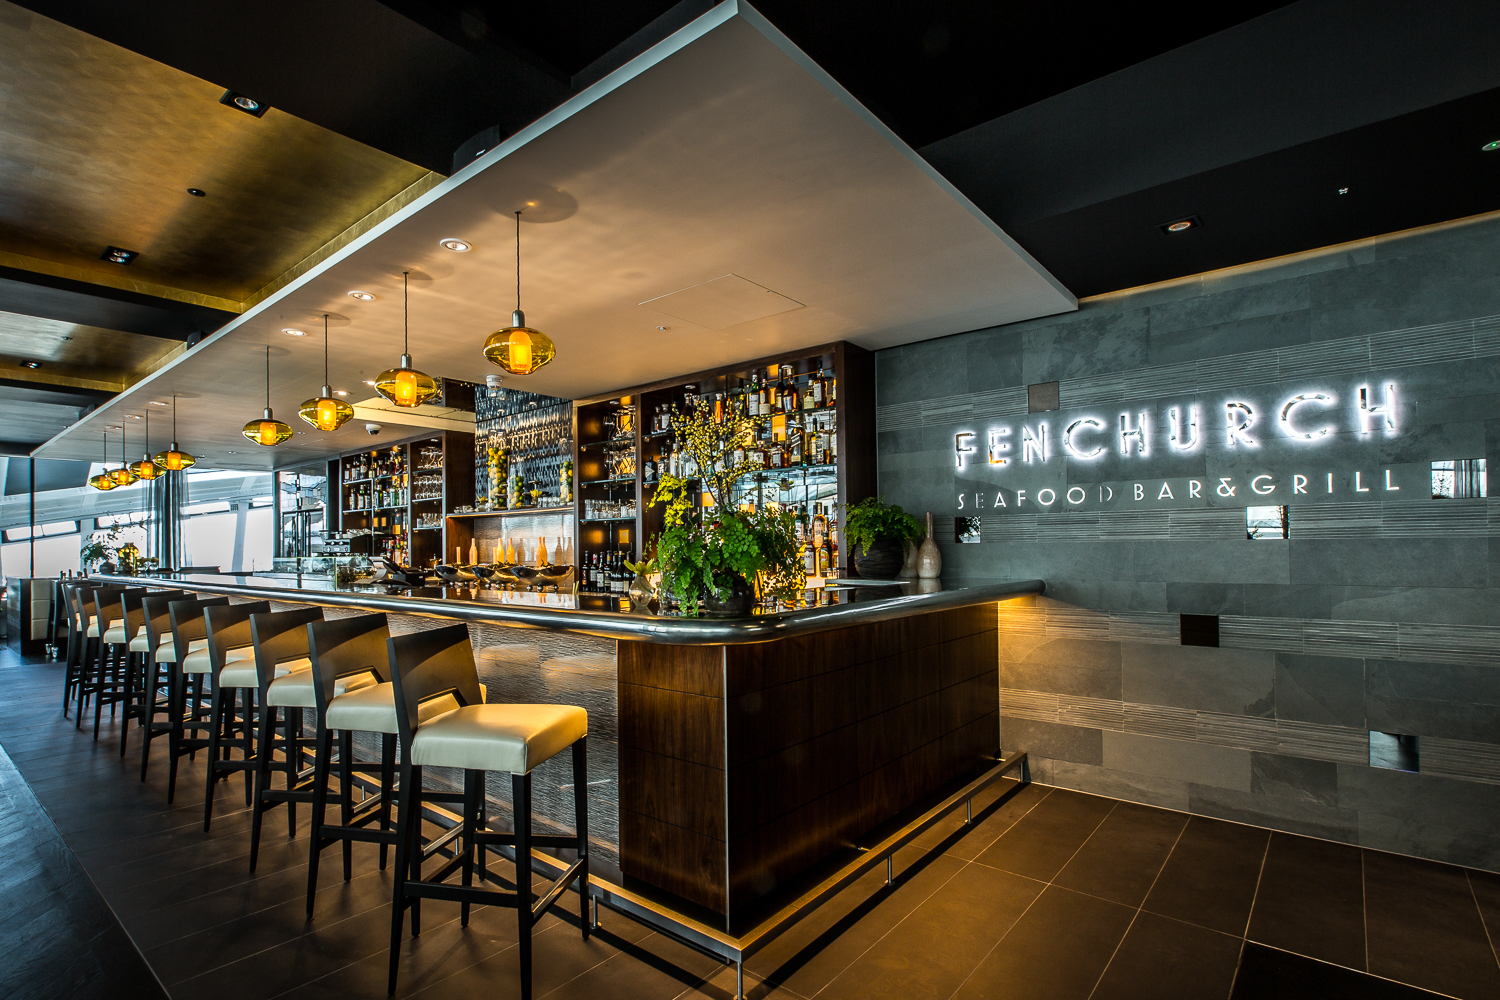 Fenchurch Seafood Bar & Grill   A sophisticated seafood restaurant with a design inspired by the surrounding cityscape, Fenchurch Seafood Bar & Grill occupies the top floor of the famous 'Walkie Talkie' building.